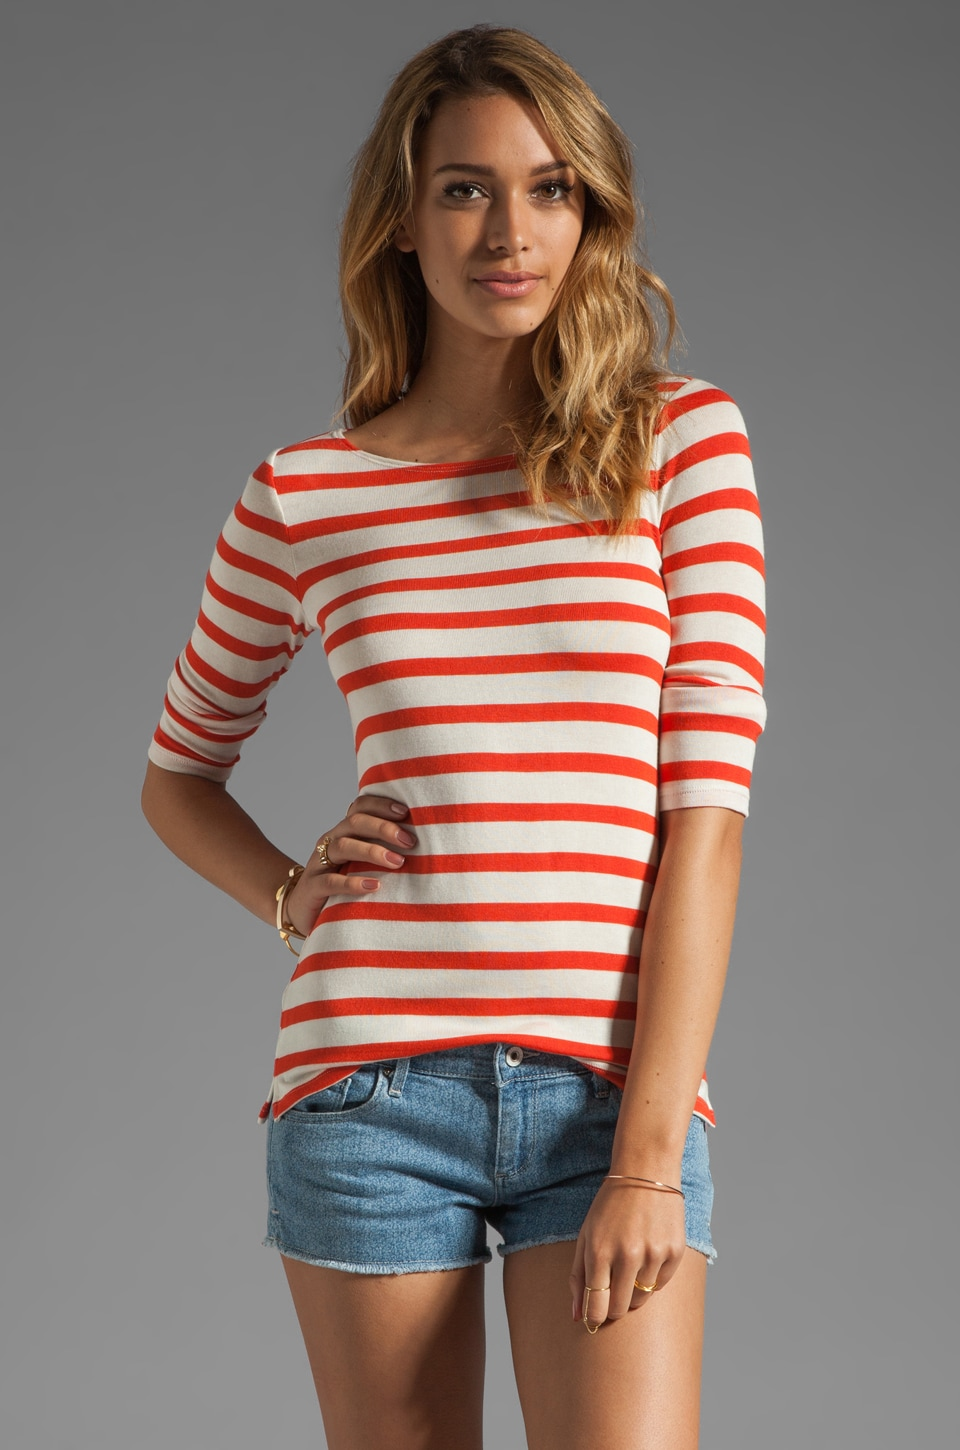 Whetherly Ricky Bateau Stripe Tee in Tomato/Creme